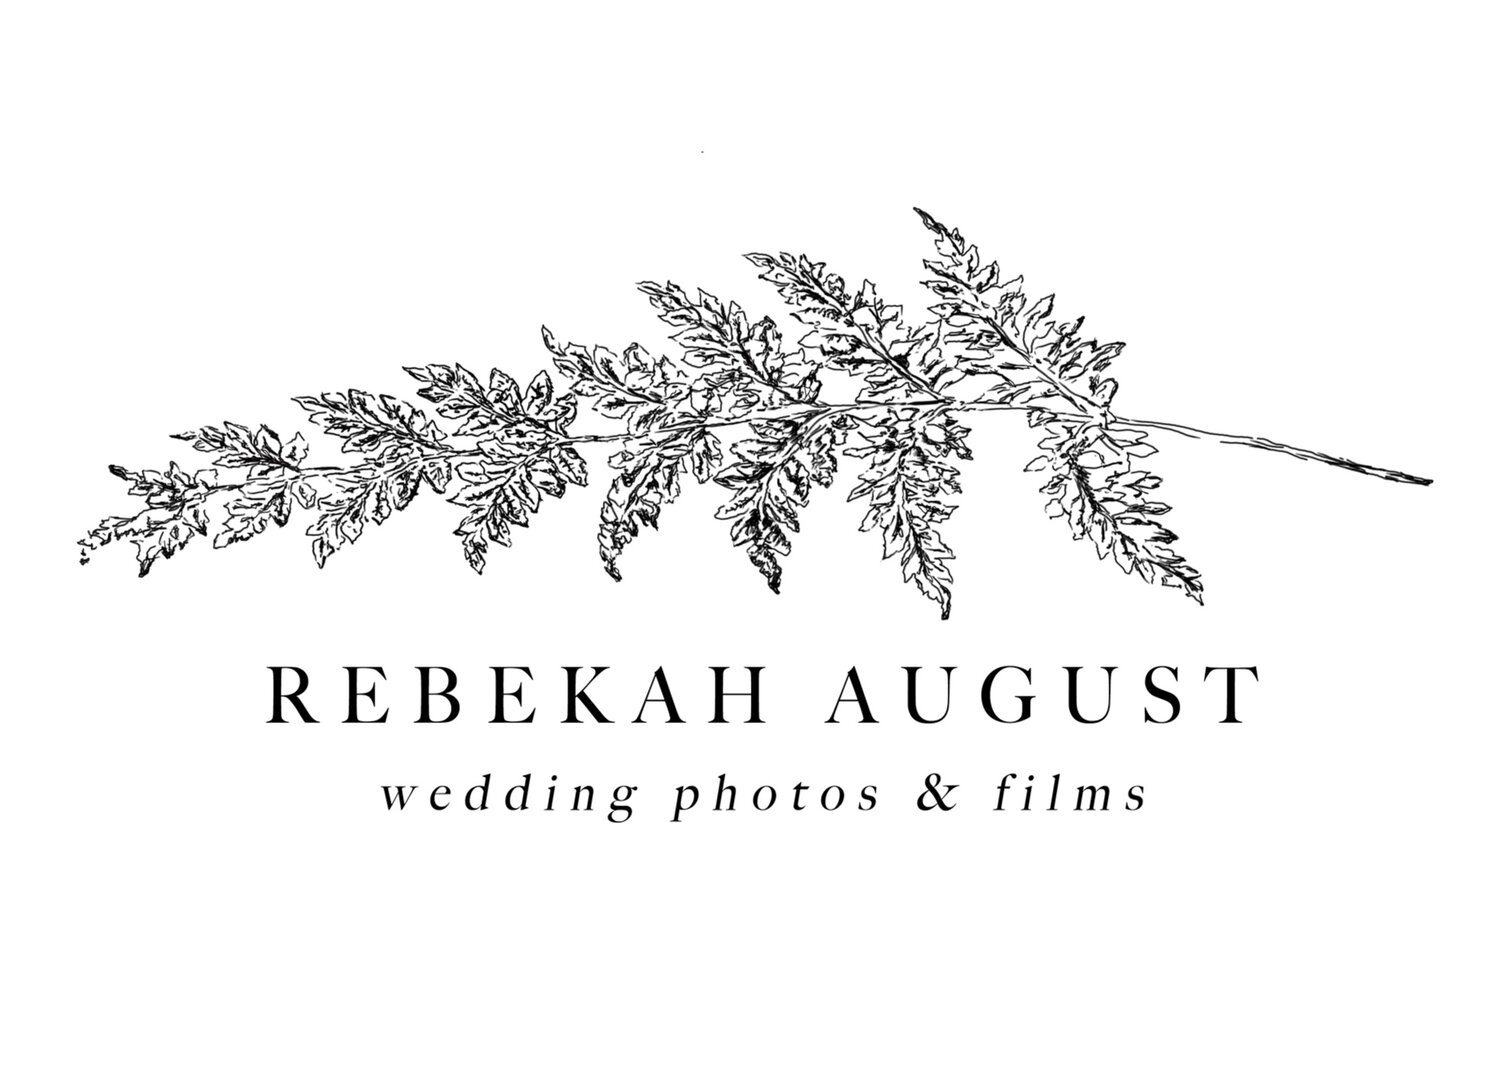 Rebekah August Wedding Photos & Films | Chilliwack Wedding Photographer and Videographer